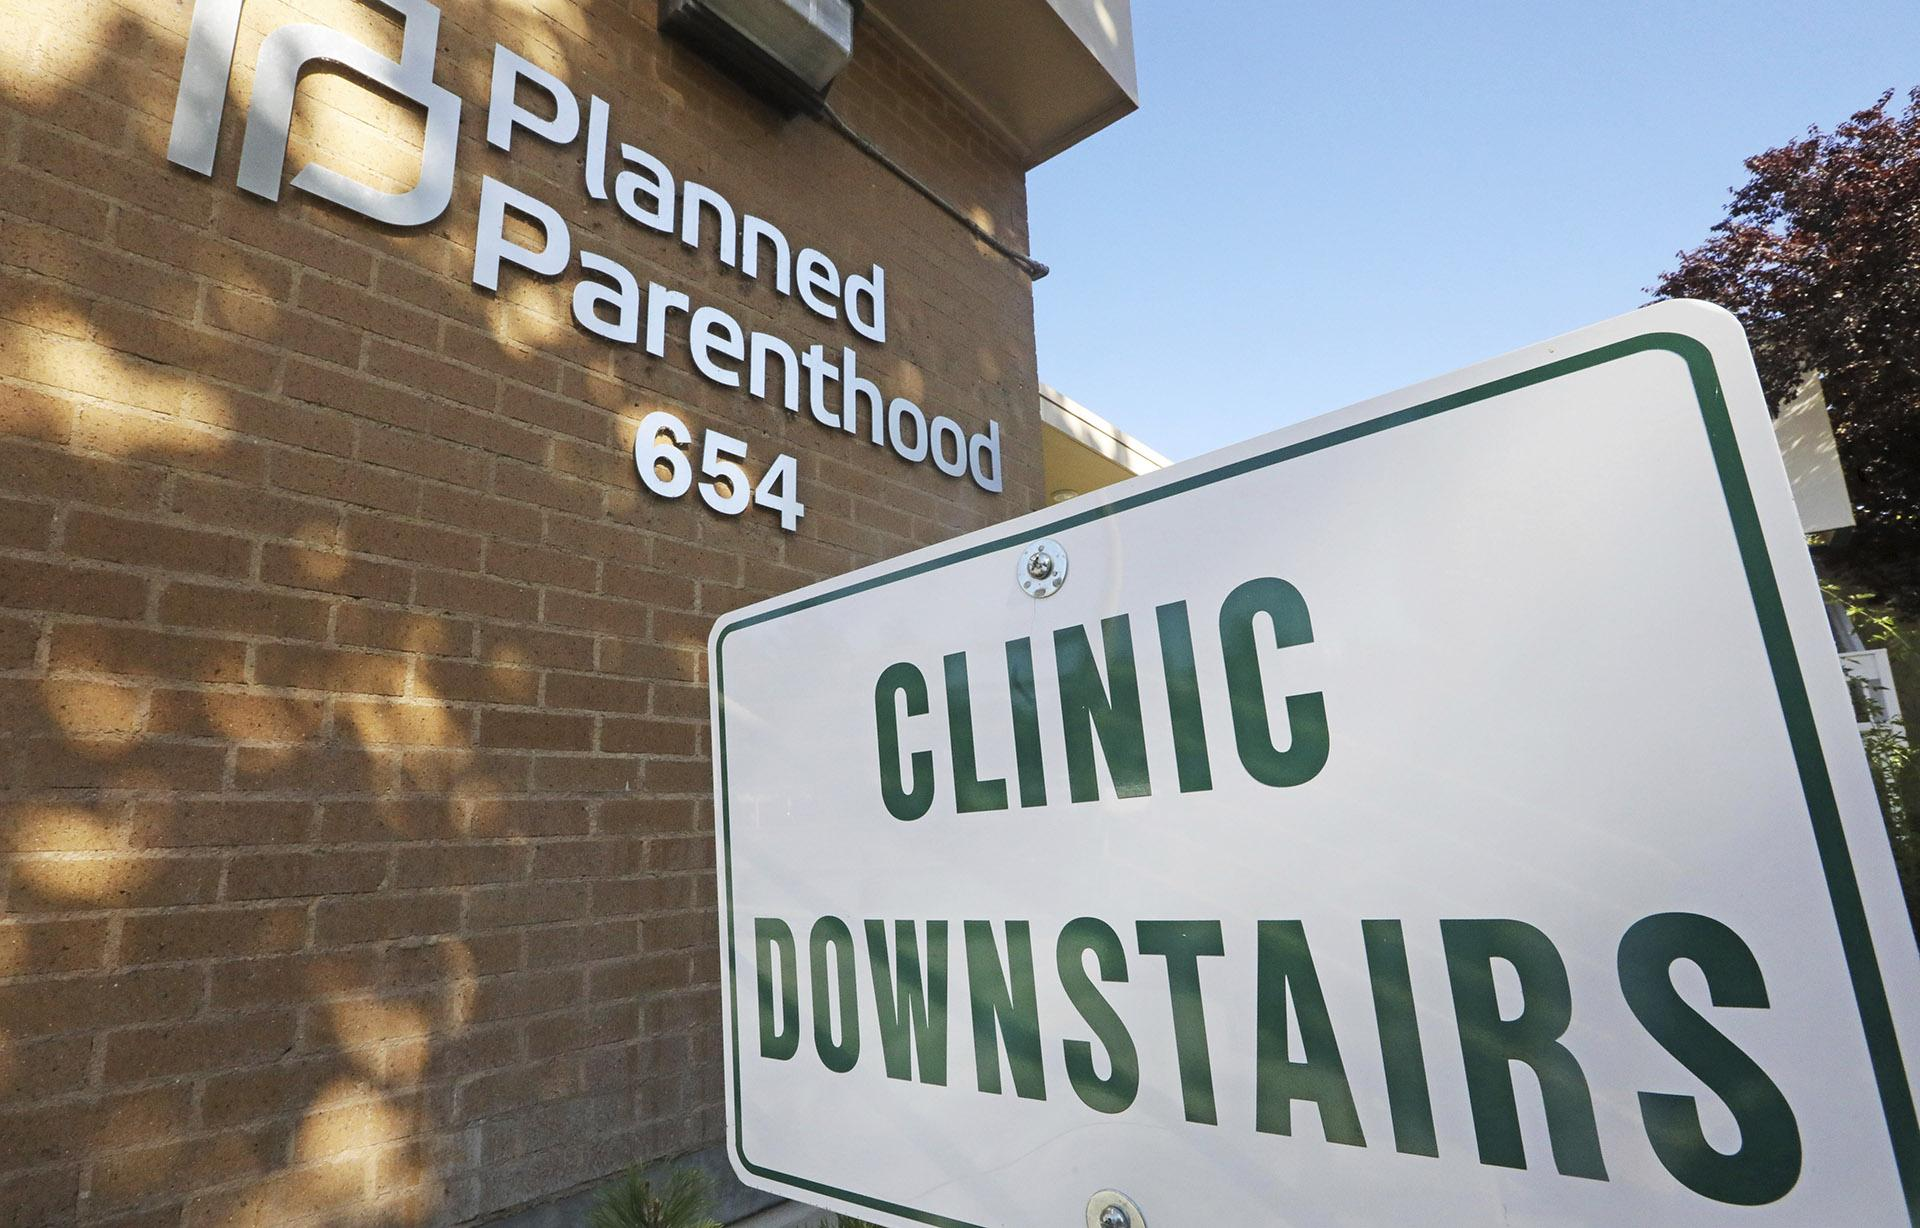 A sign is displayed at Planned Parenthood of Utah Wednesday, Aug. 21, 2019, in Salt Lake City. About 39,000 people received treatment from Planned Parenthood of Utah in 2018 under a federal family planning program called Title X. The organization this week announced it is pulling out of the program rather than abide by a new Trump administration rule prohibiting clinics from referring women for abortions. (AP Photo / Rick Bowmer)